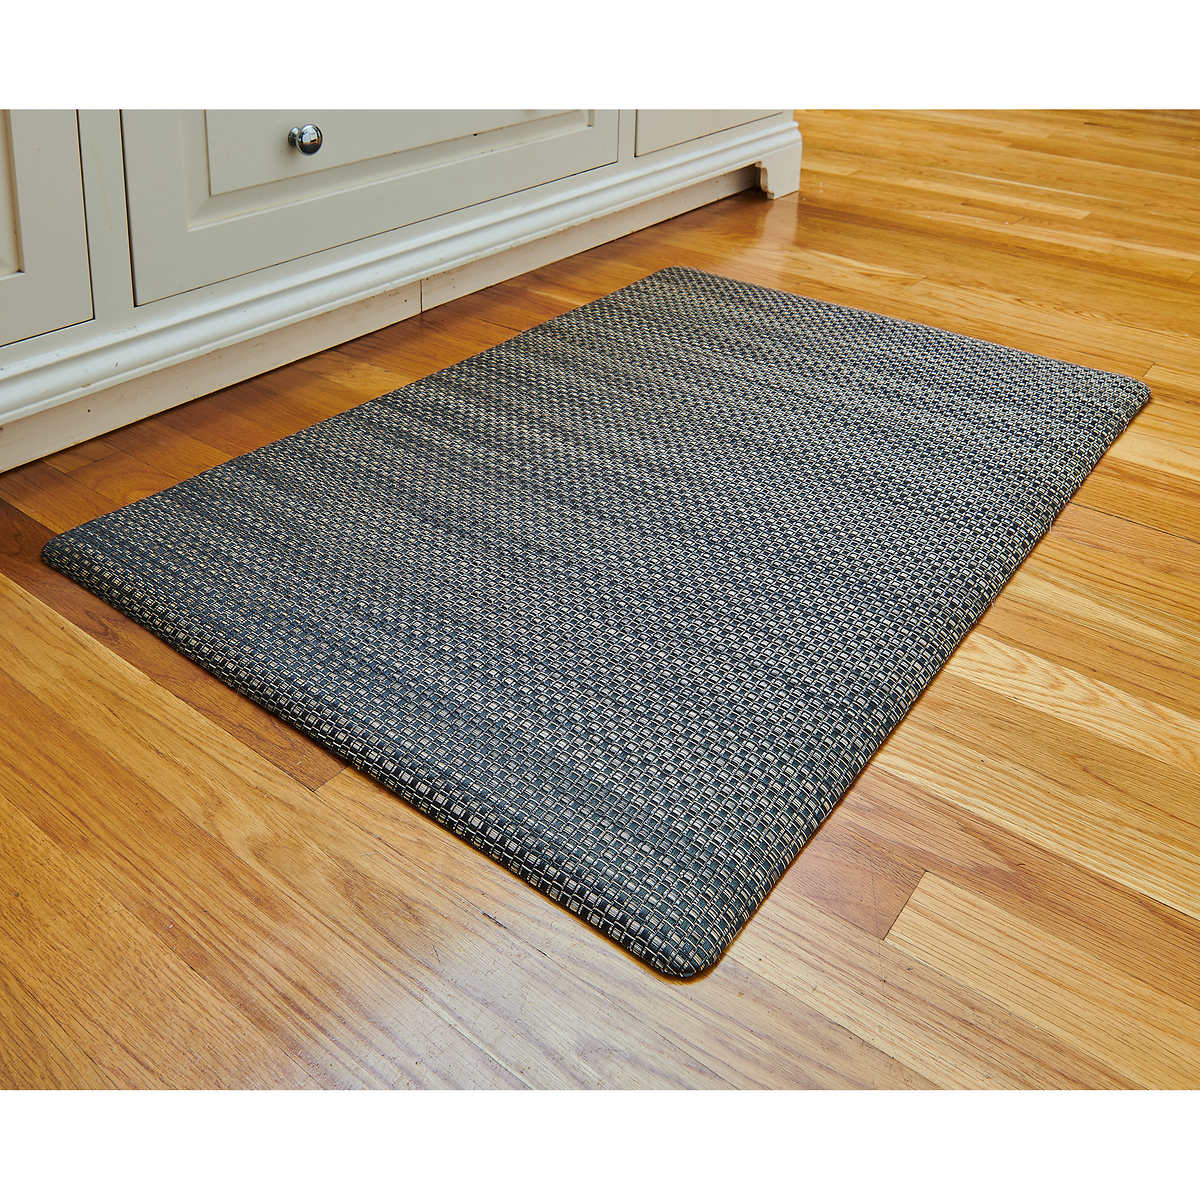 Floor Mats Kitchen Mats